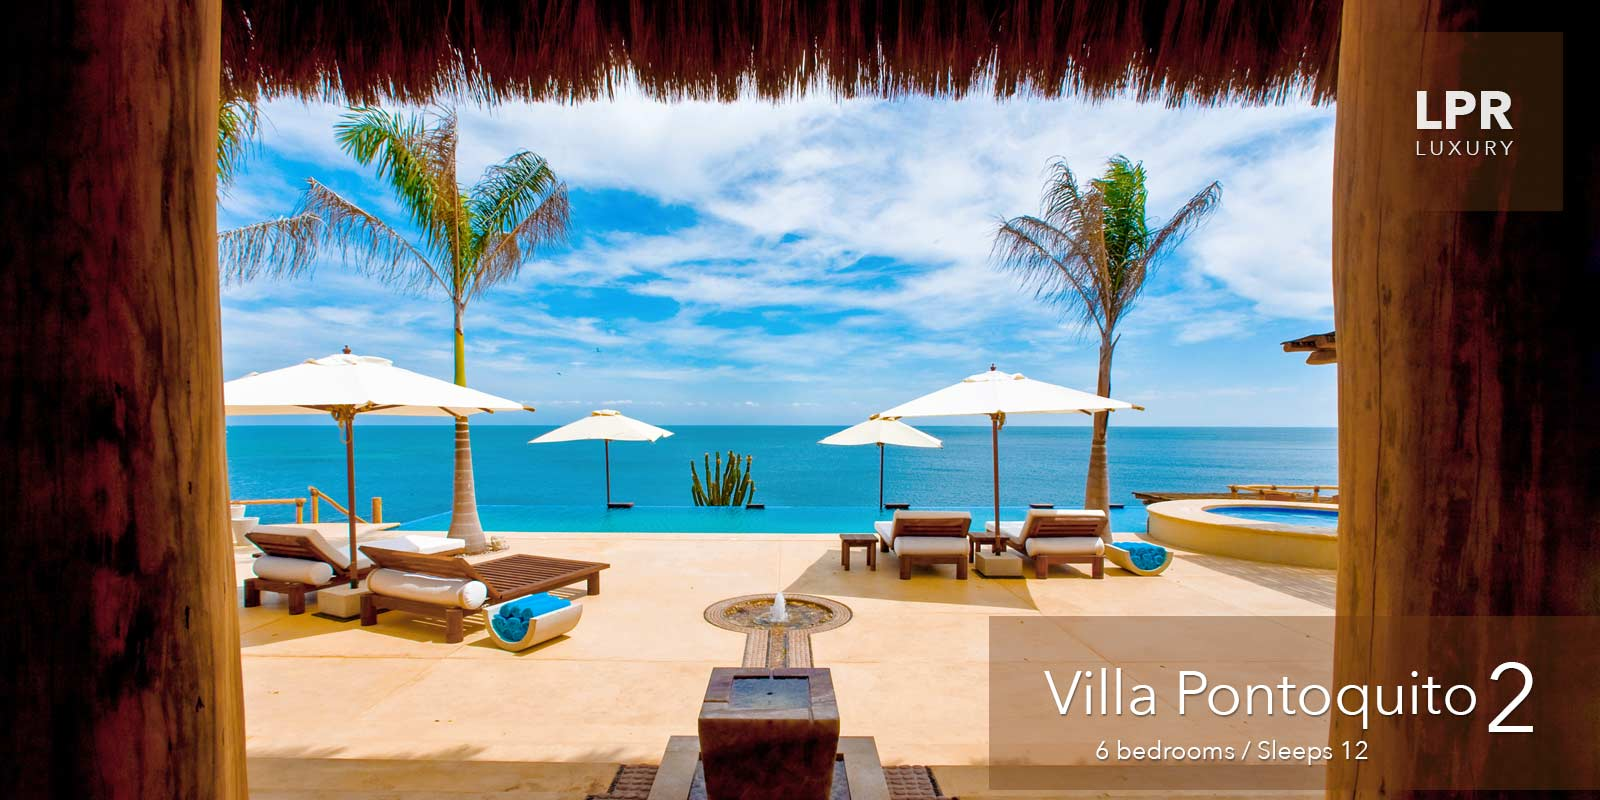 Villa Pontoquito 2 - Luxury Punta de Mita Real Estate and Vacation Rentals - Riviera Nayarit, Mexico